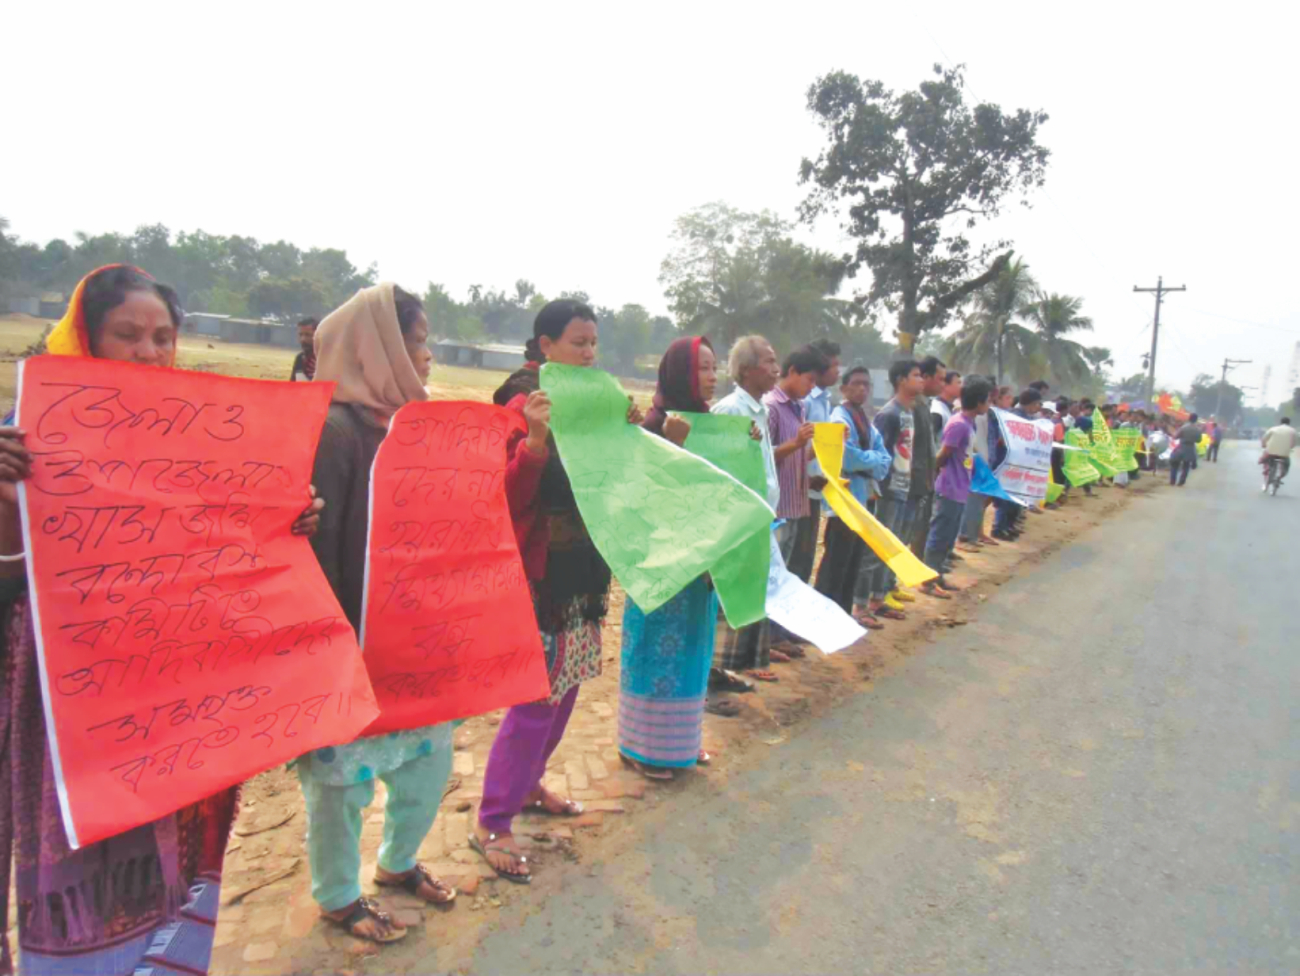 Indigenous people form a human chain at Jalchhatra in Madhupur upazila under Tangail district yesterday demanding proper steps for ensuring legal ownership of their land and withdrawal of 'false' cases filed against them. PHOTO: STAR